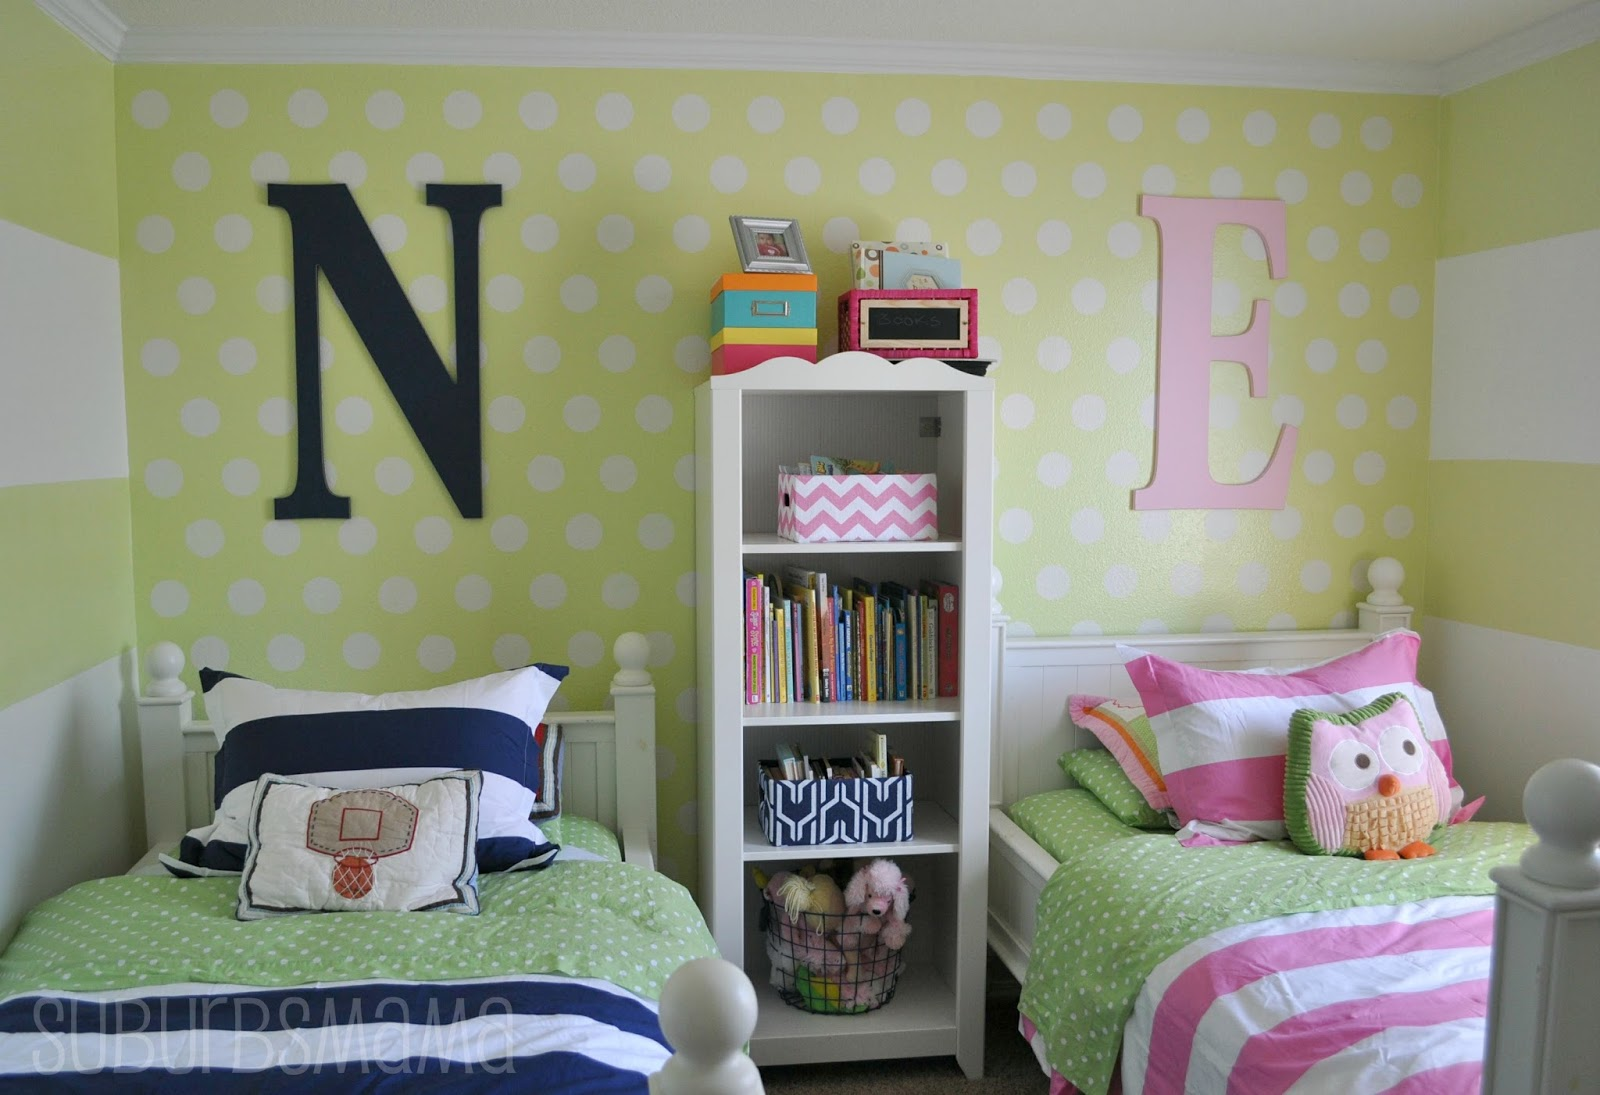 Shared Bedroom Ideas Teenagers Suburbs Mama Shared Kids Room Take 3